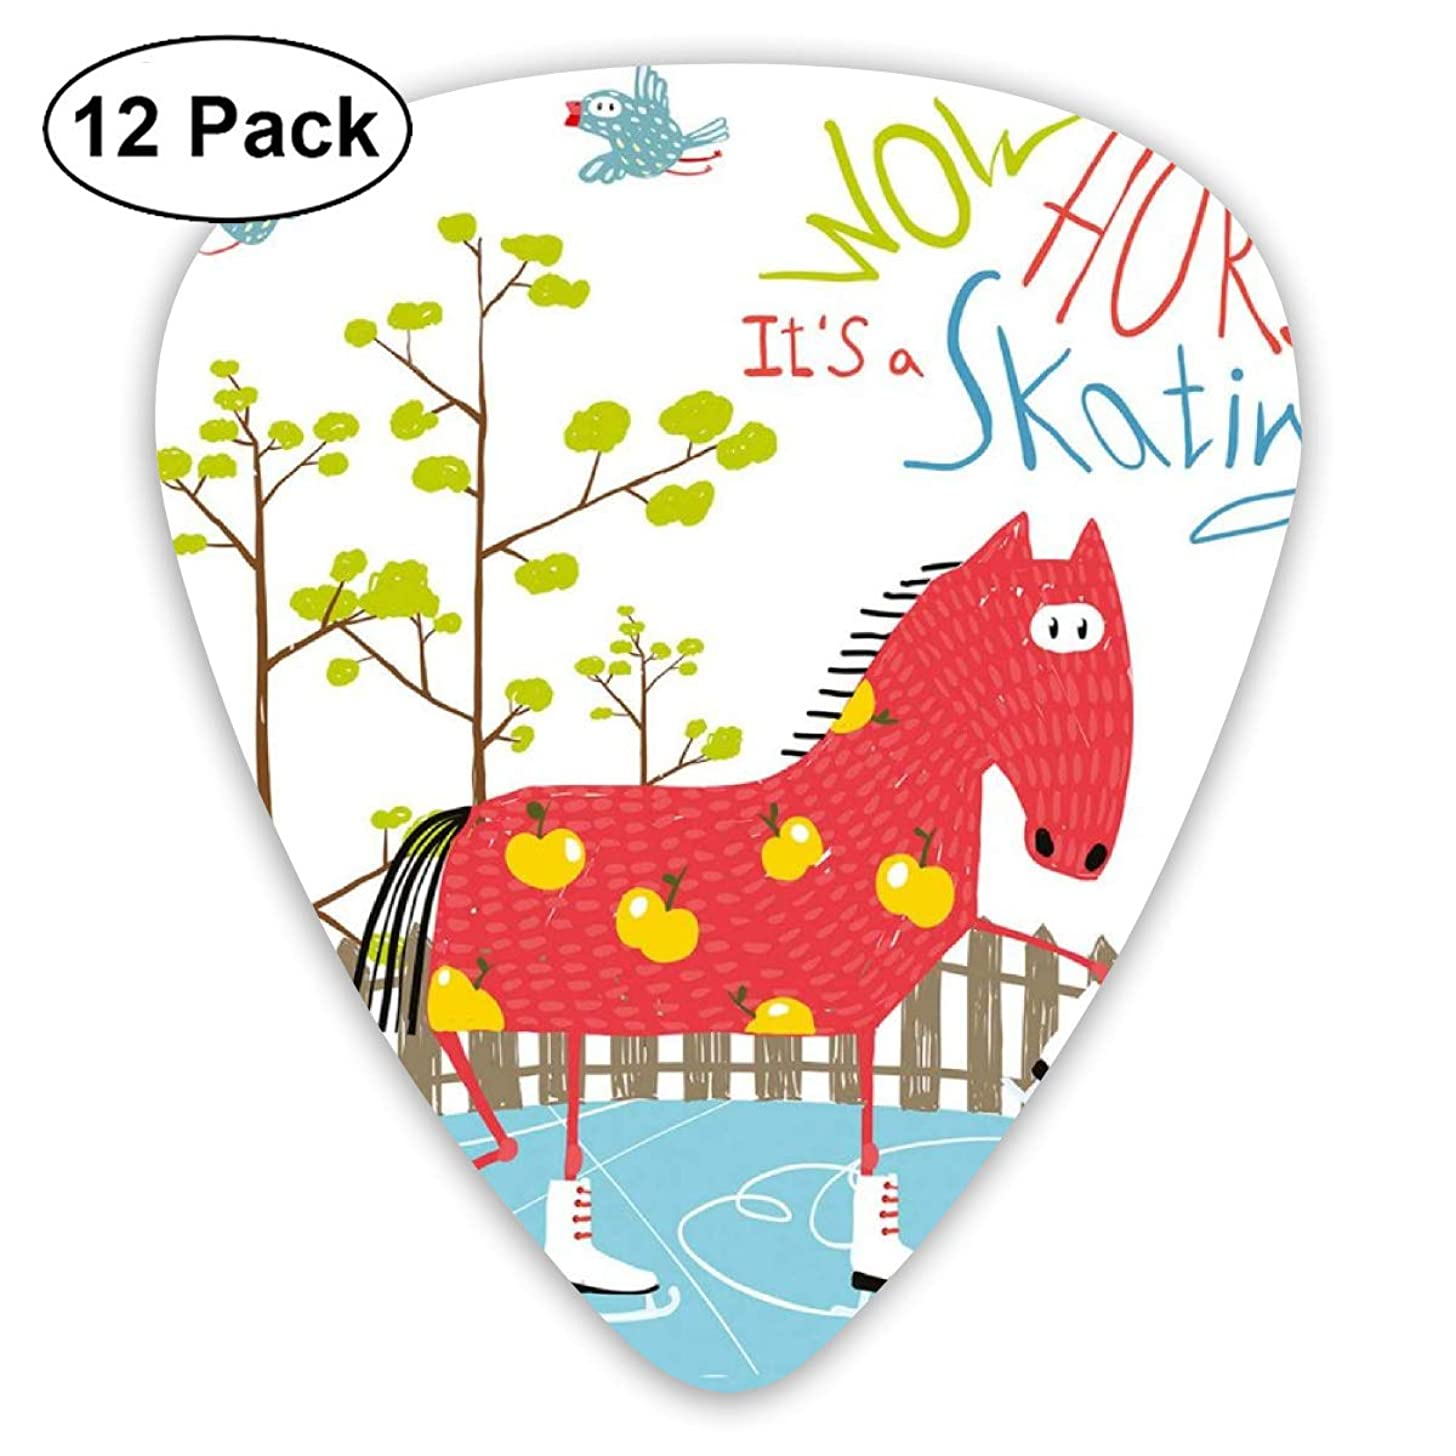 Celluloid Guitar Picks - 12 Pack,Abstract Art Colorful Designs,Wow Its Skating Horse On Ice Amusing Colorful Cartoon Tree Birds Pattern Winter,For Bass Electric & Acoustic Guitars.